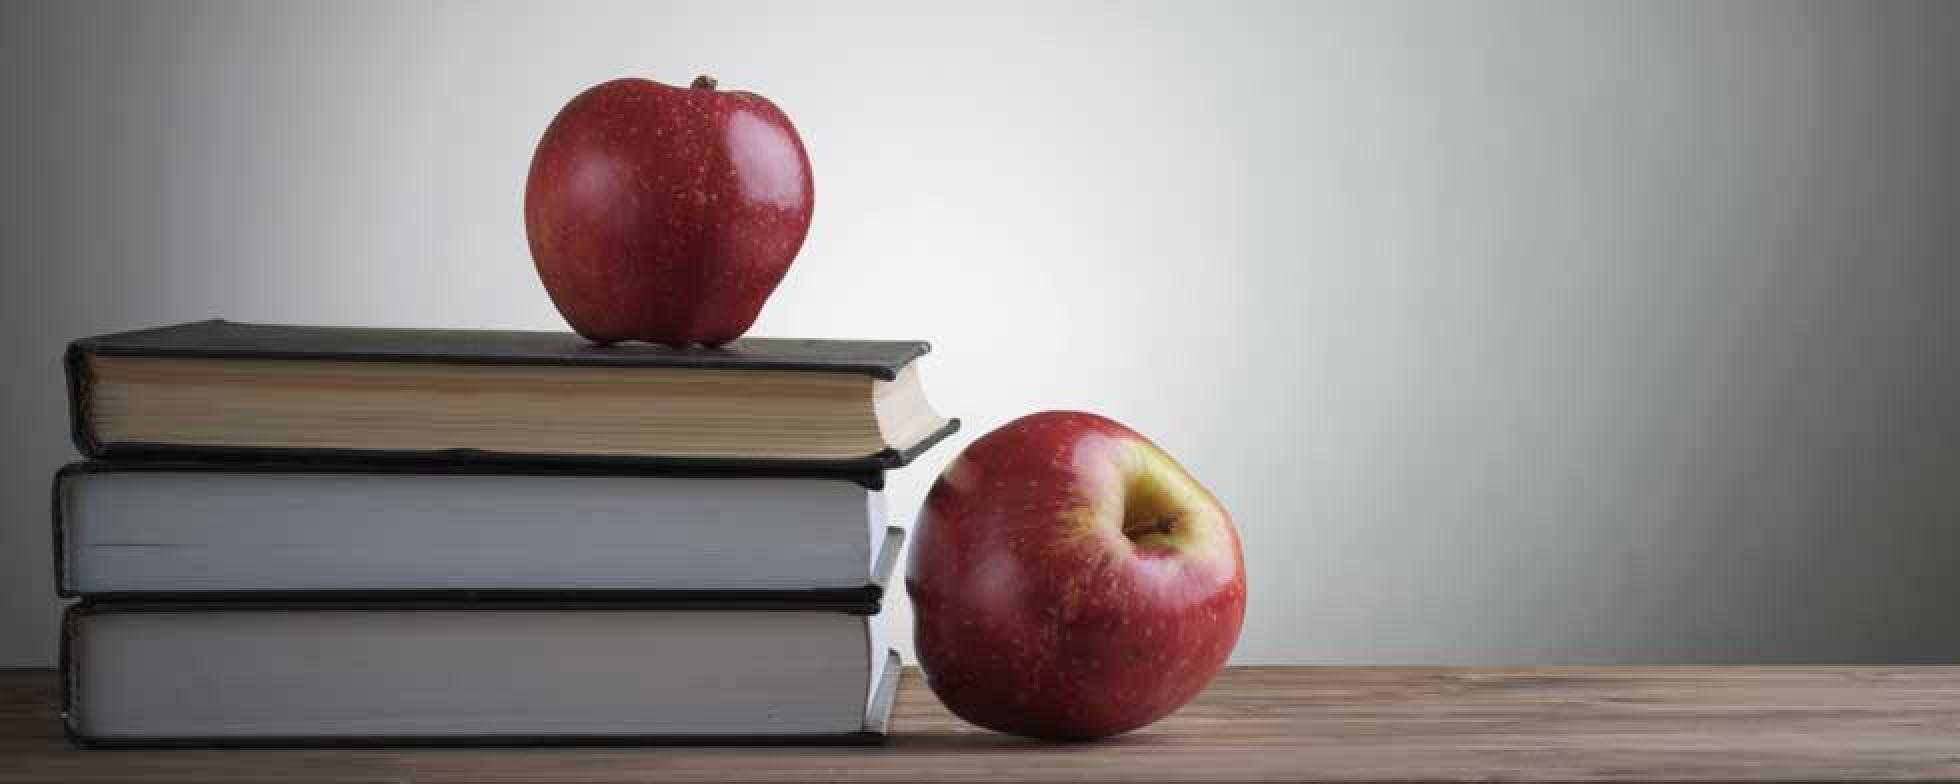 Books and two apples on a desk.